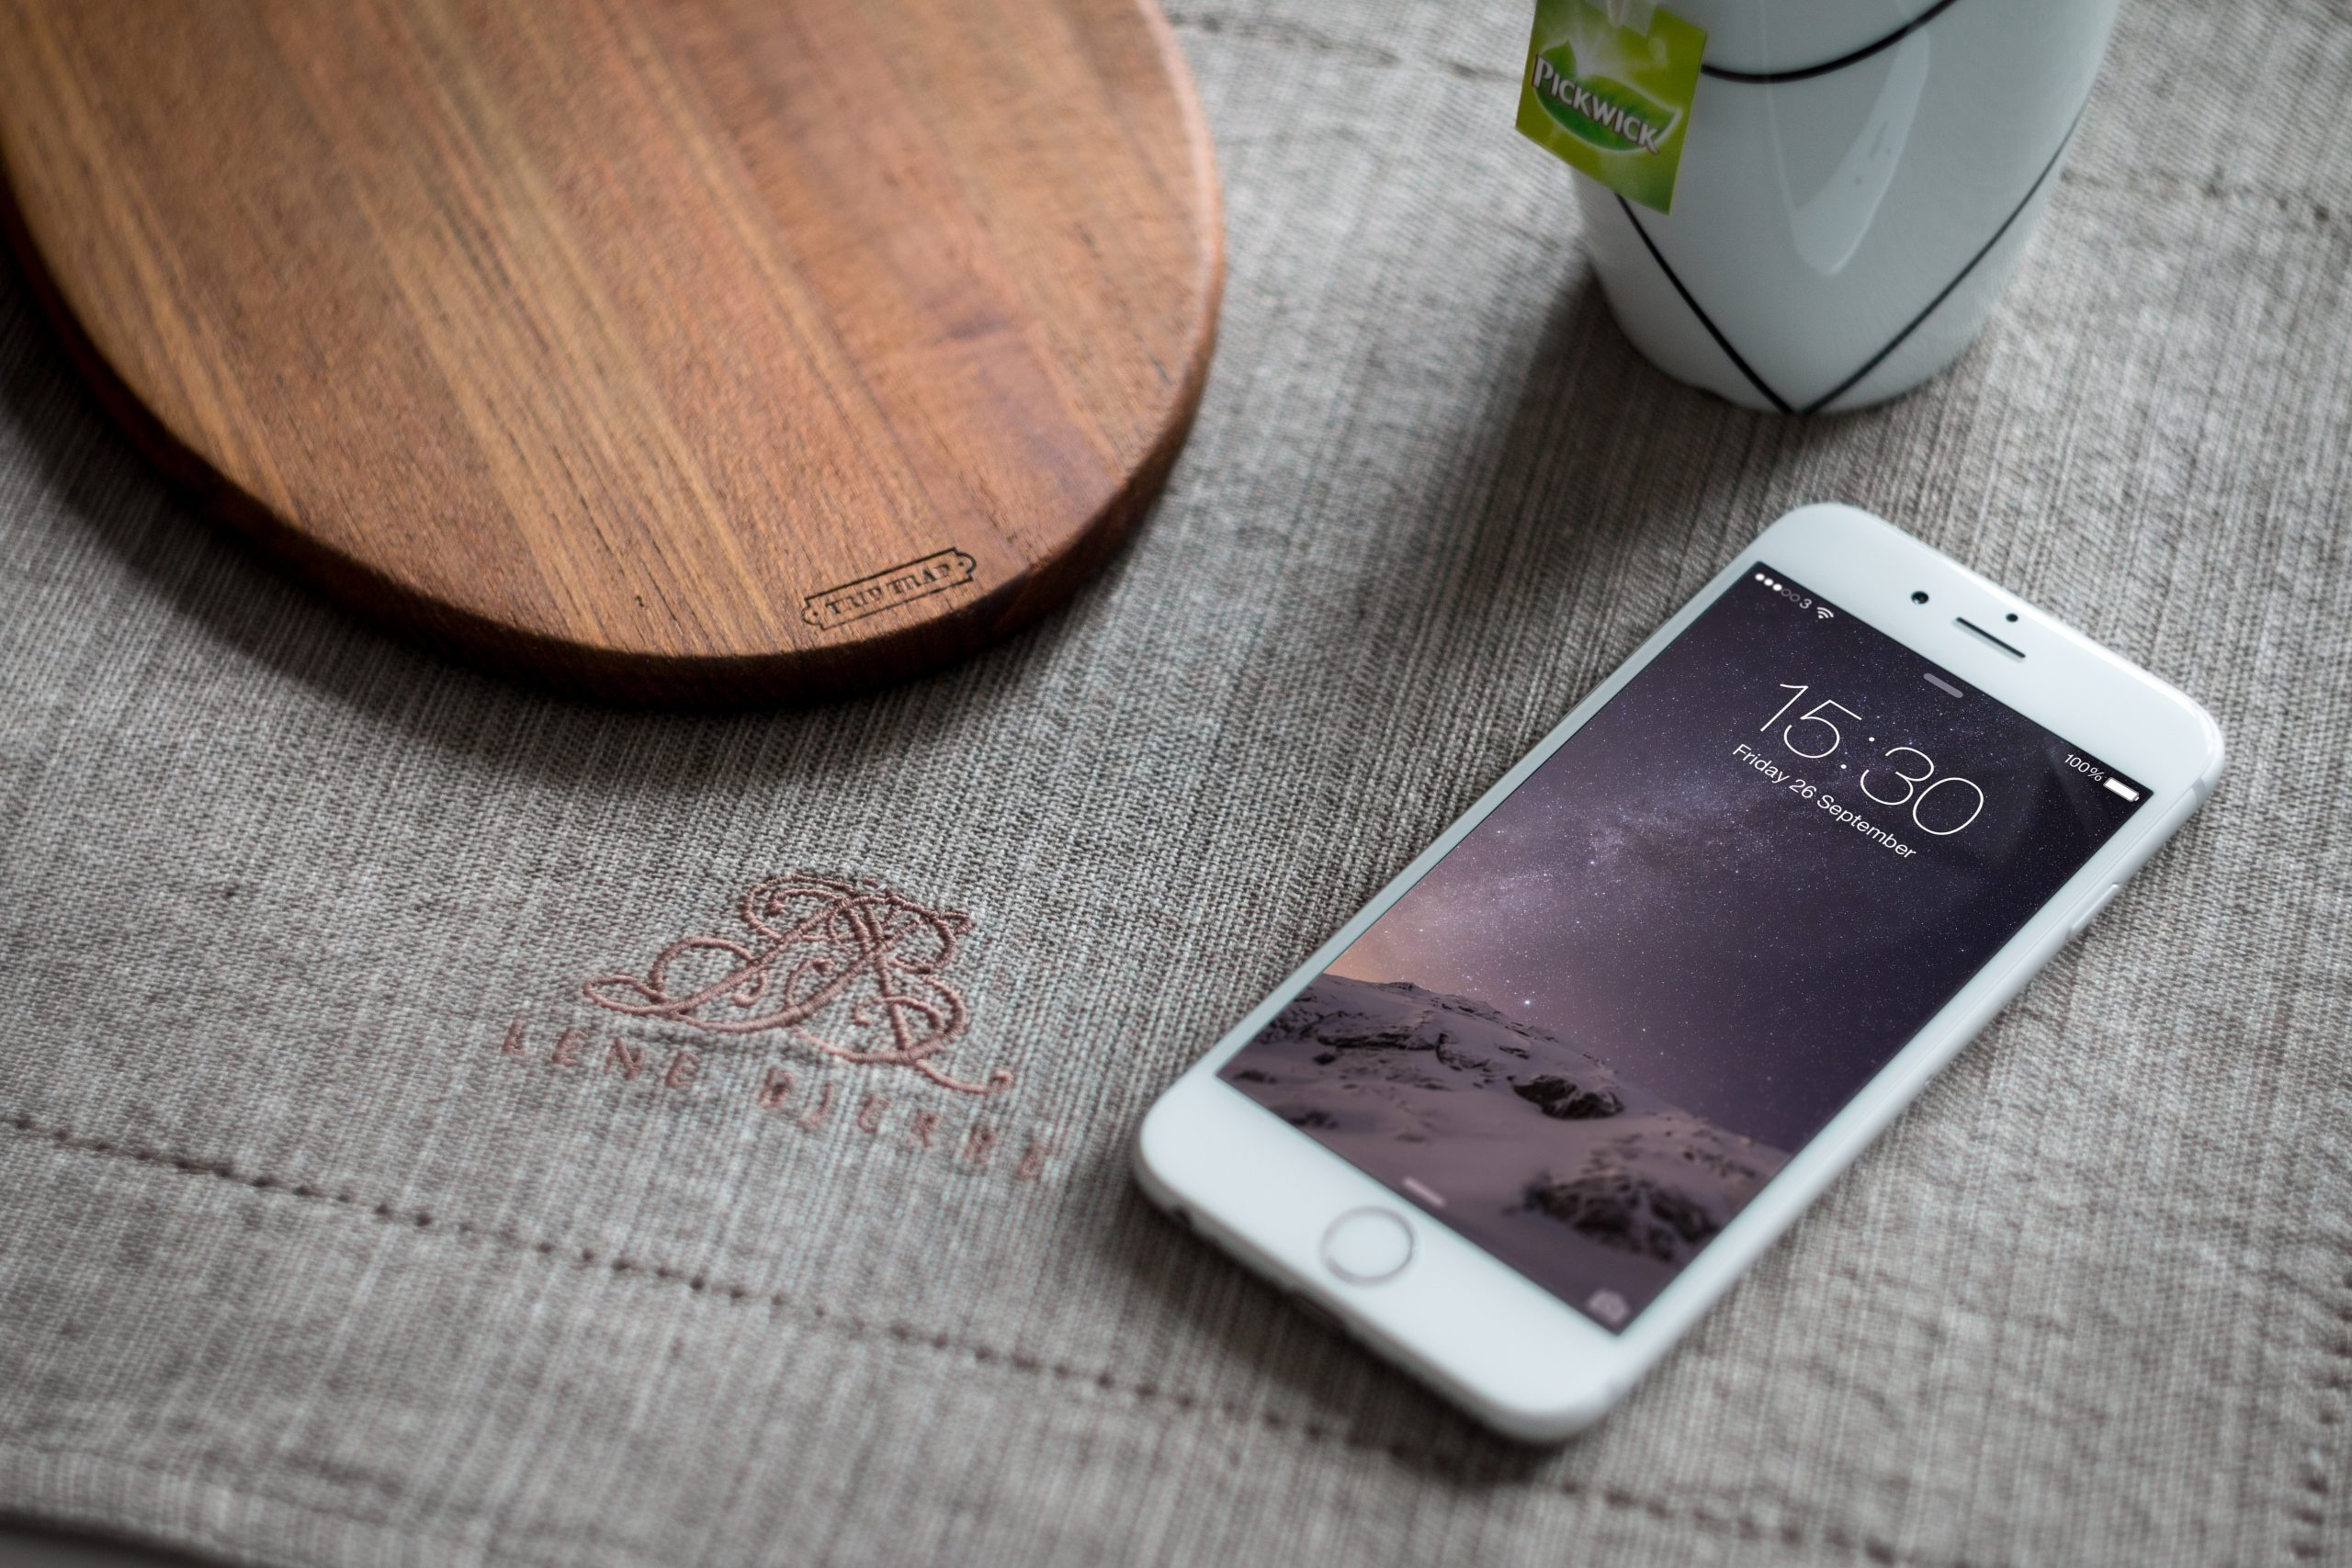 Photographic iPhone 6 Mockup